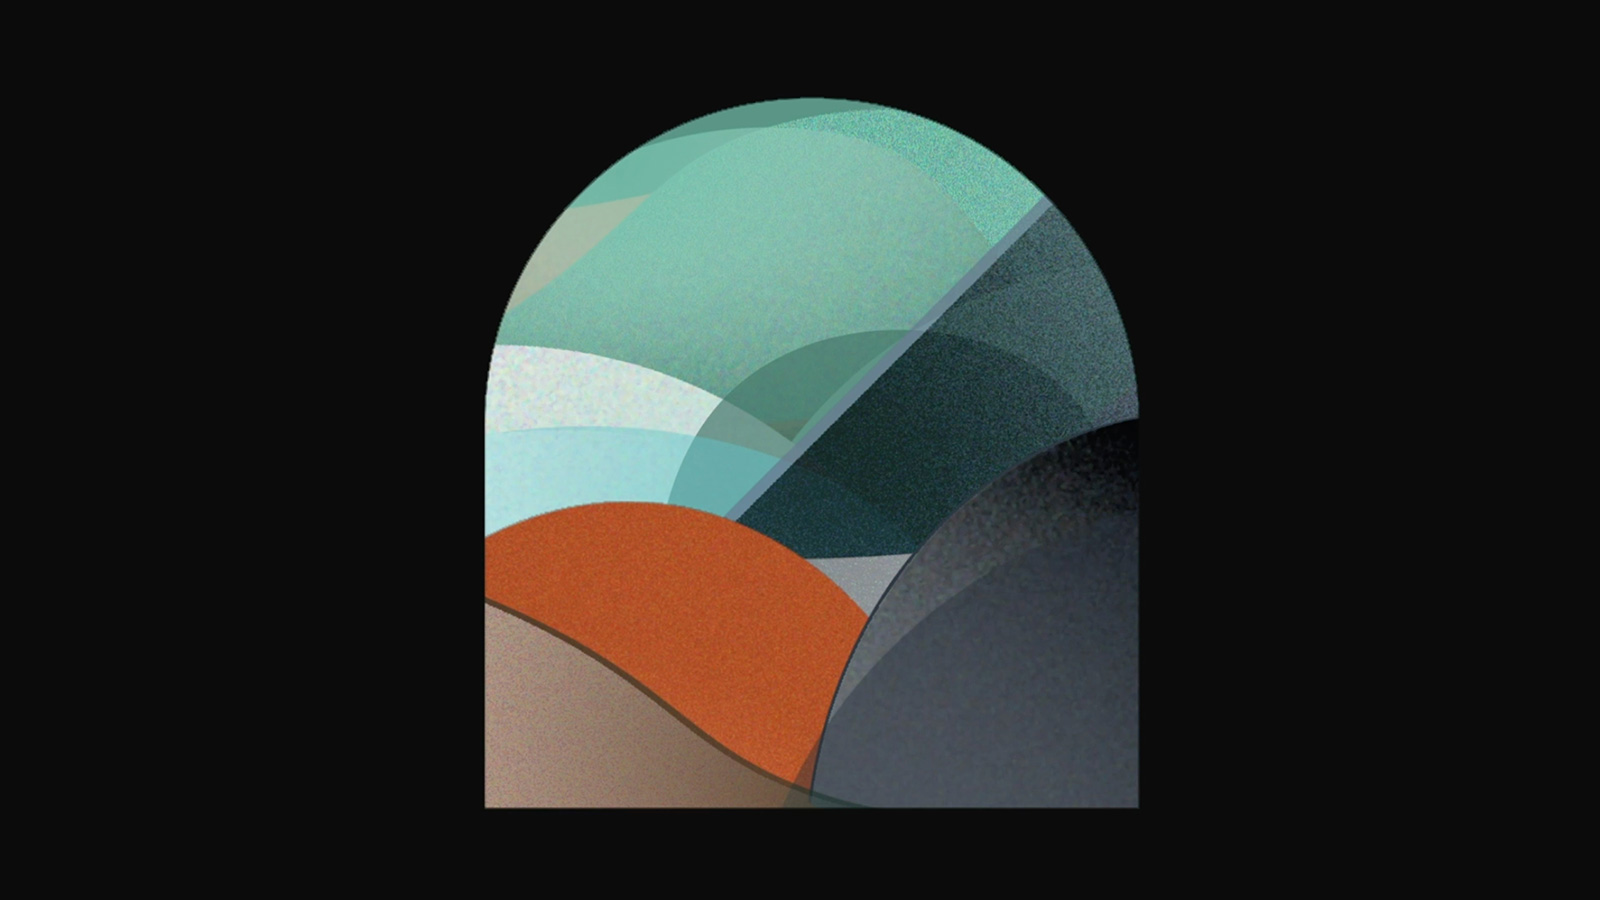 A range of colourful abstract shapes.